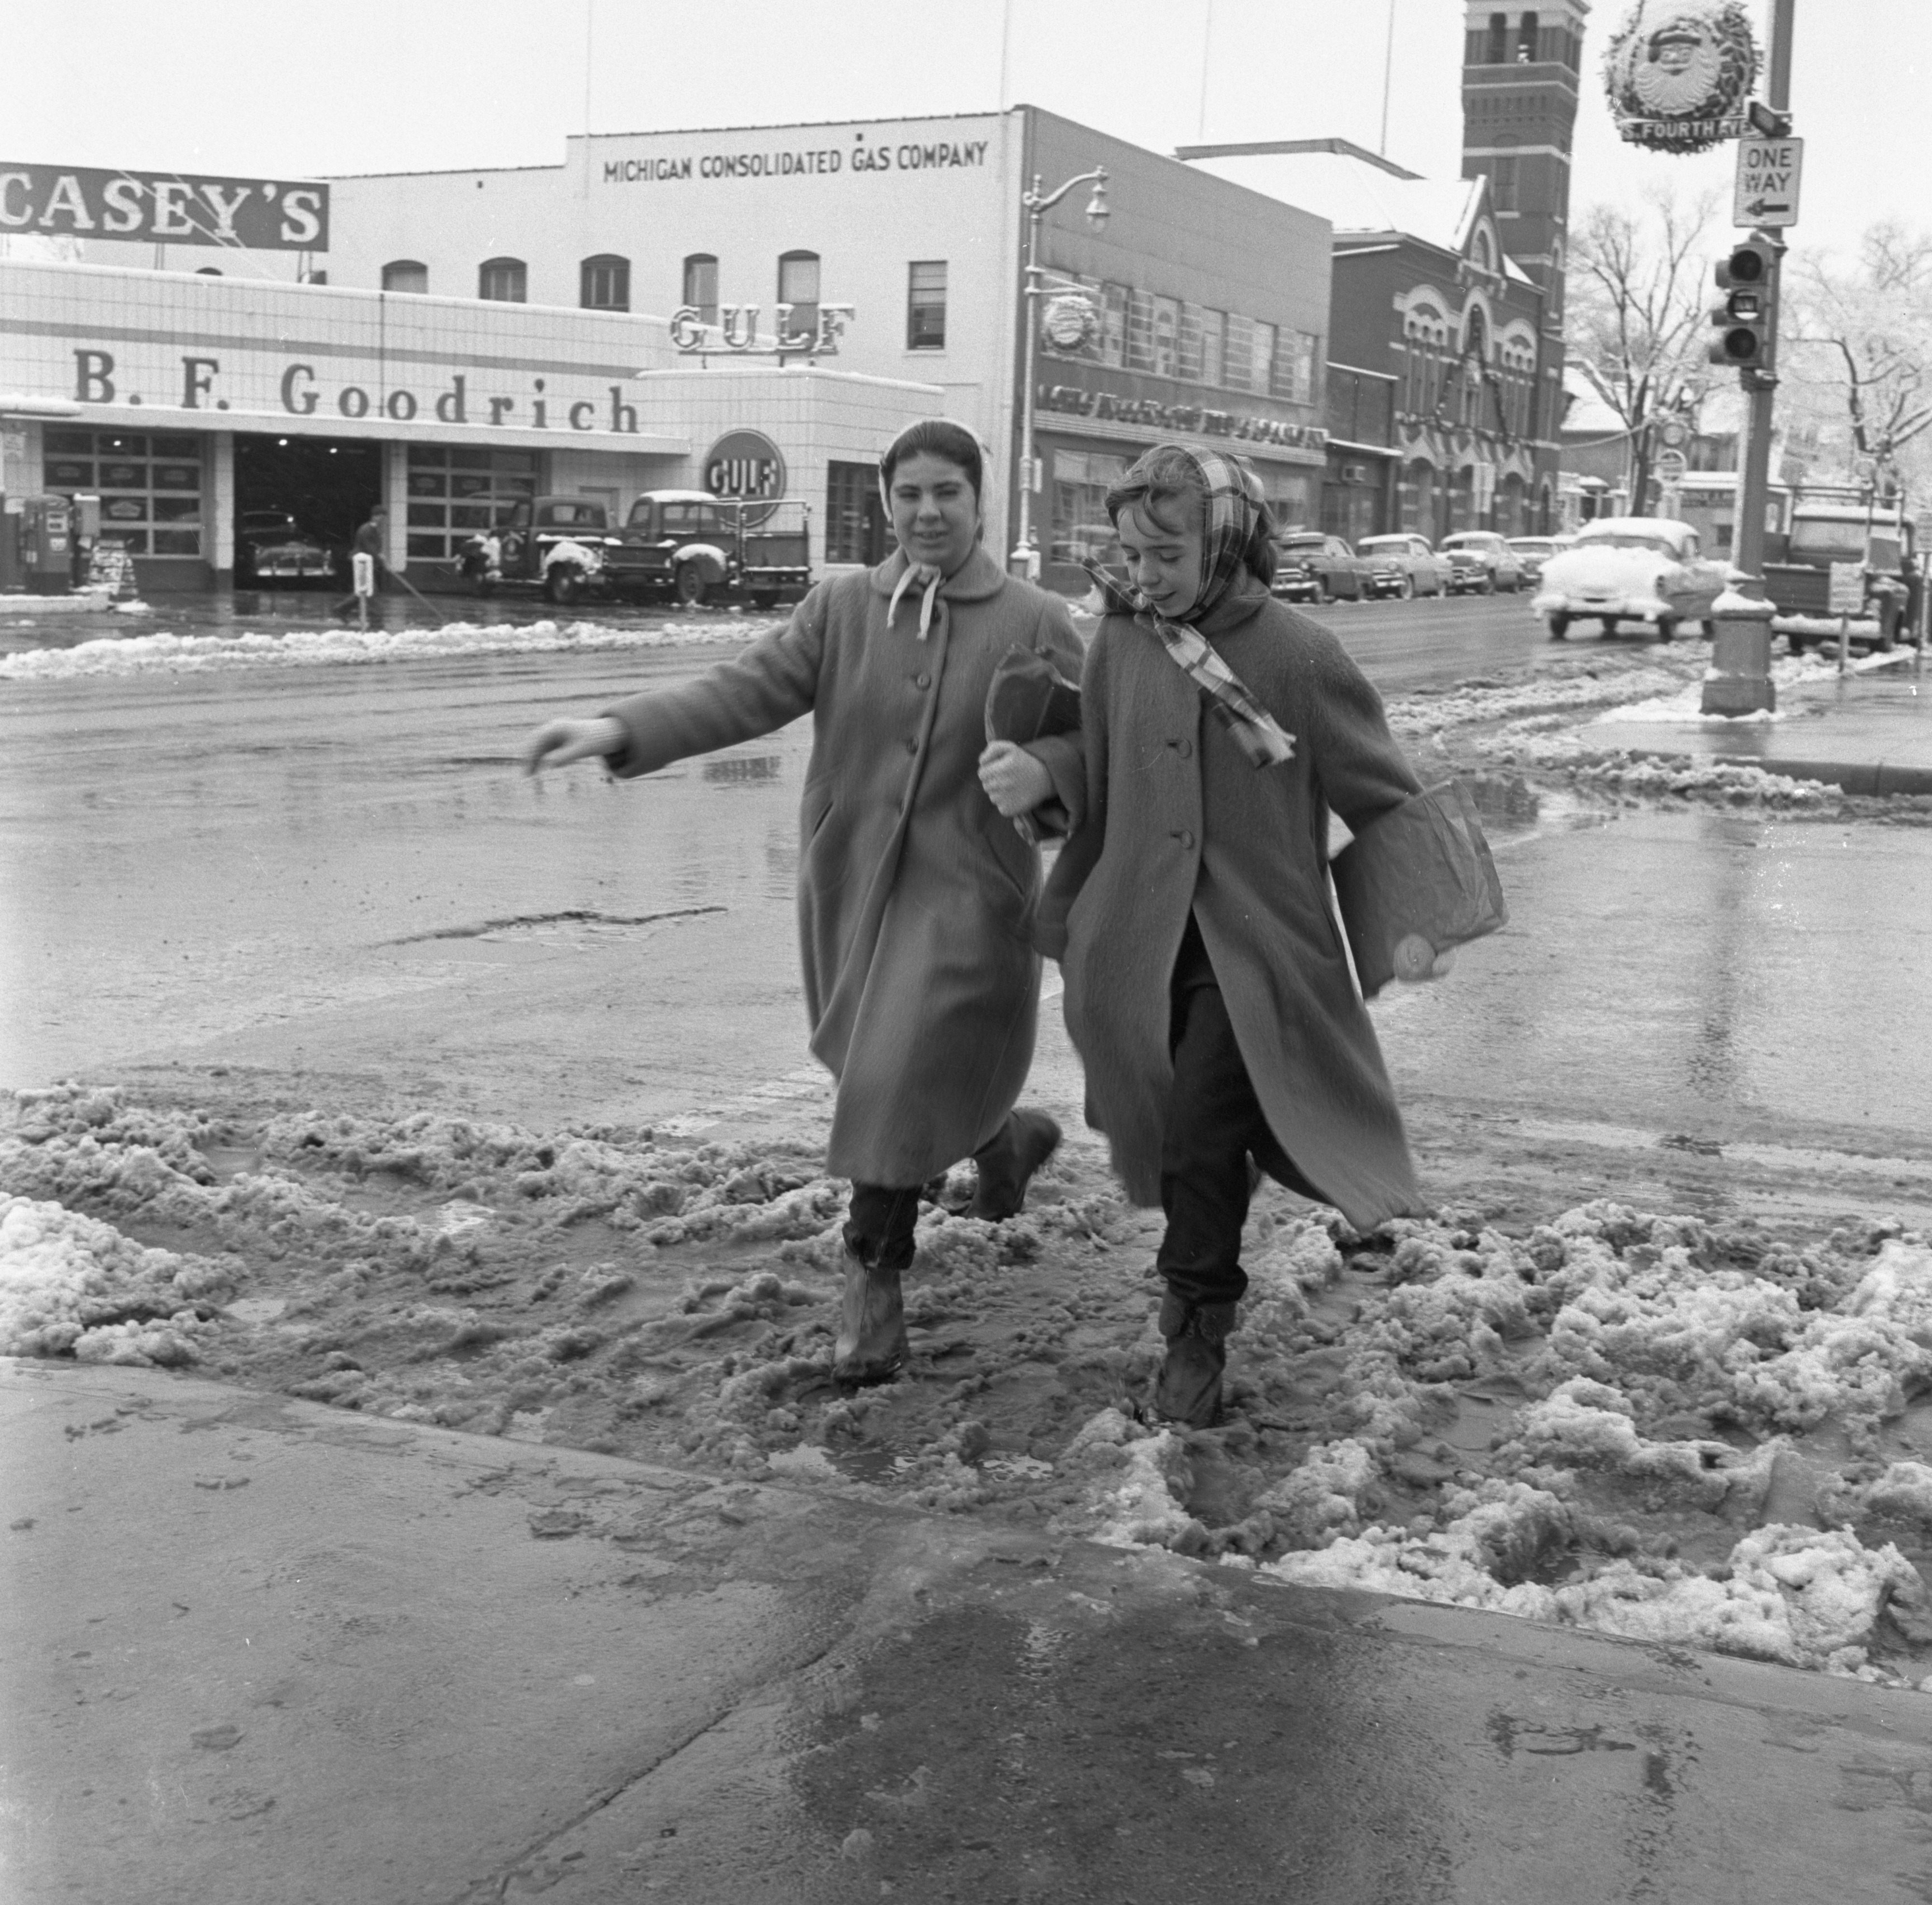 Pedestrians Cross Fourth Avenue After A Snowfall, December 1957 image